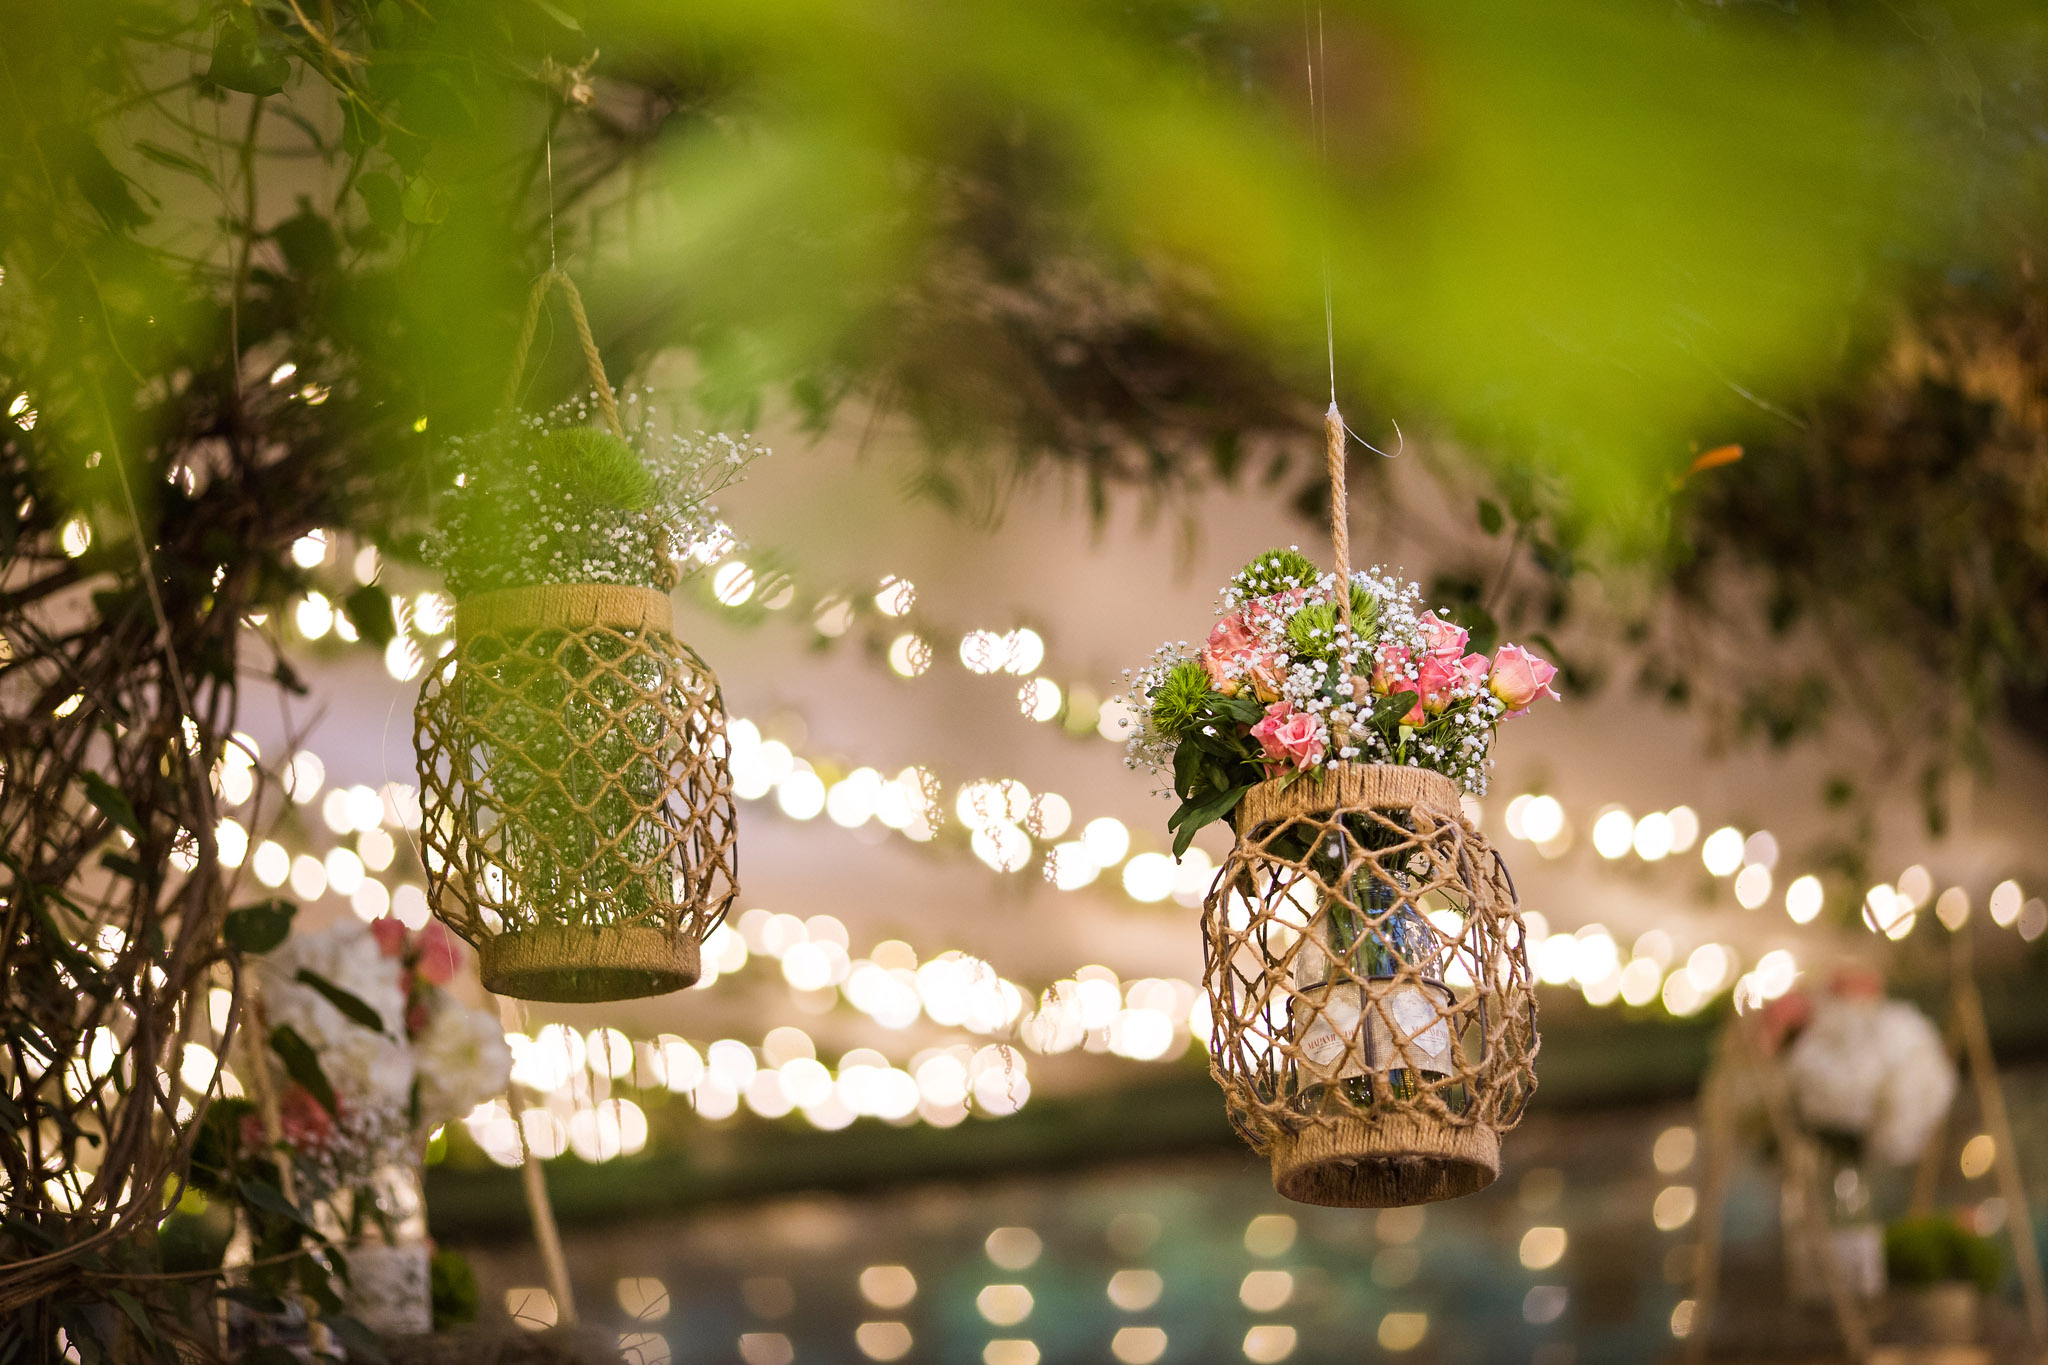 wedding-travellers-destination-wedding-photography-colombia-medellin-chuscalito-decoration-white-pink-roses